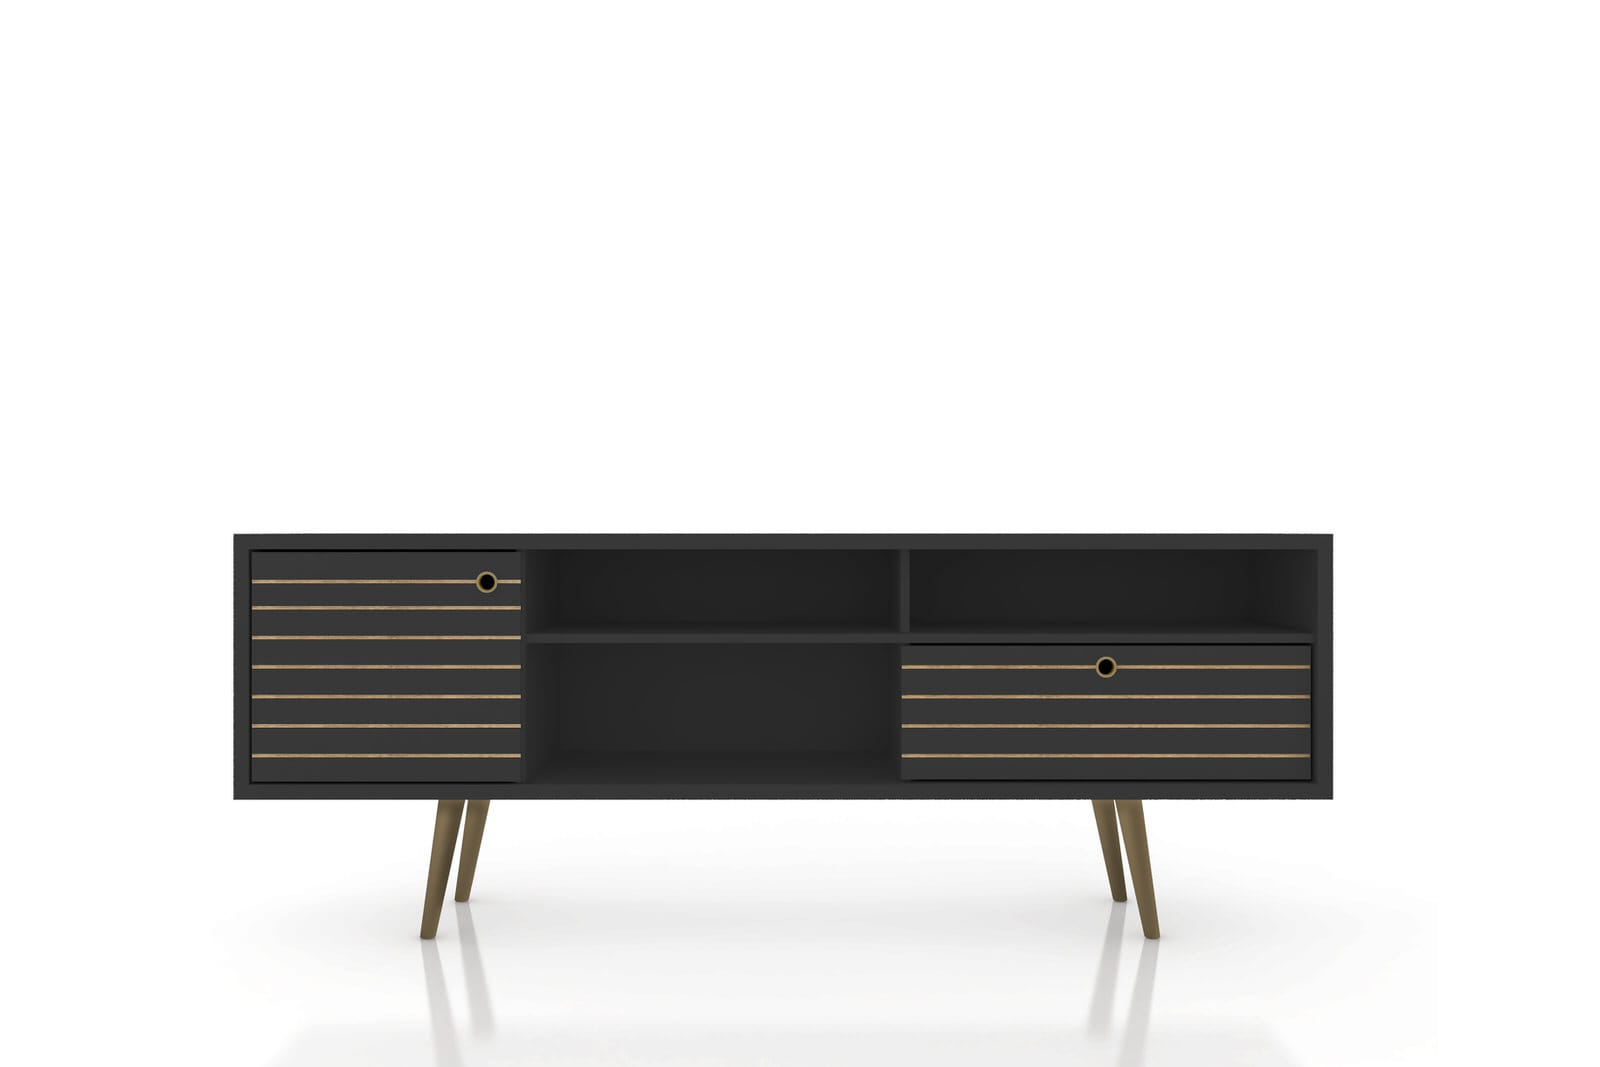 buy online 2230f f8fa5 Liberty Mid Century - Modern 70.86 Inch Black TV Stand w/ 4 Shelving Spaces  & 1 Drawer by Manhattan Comfort